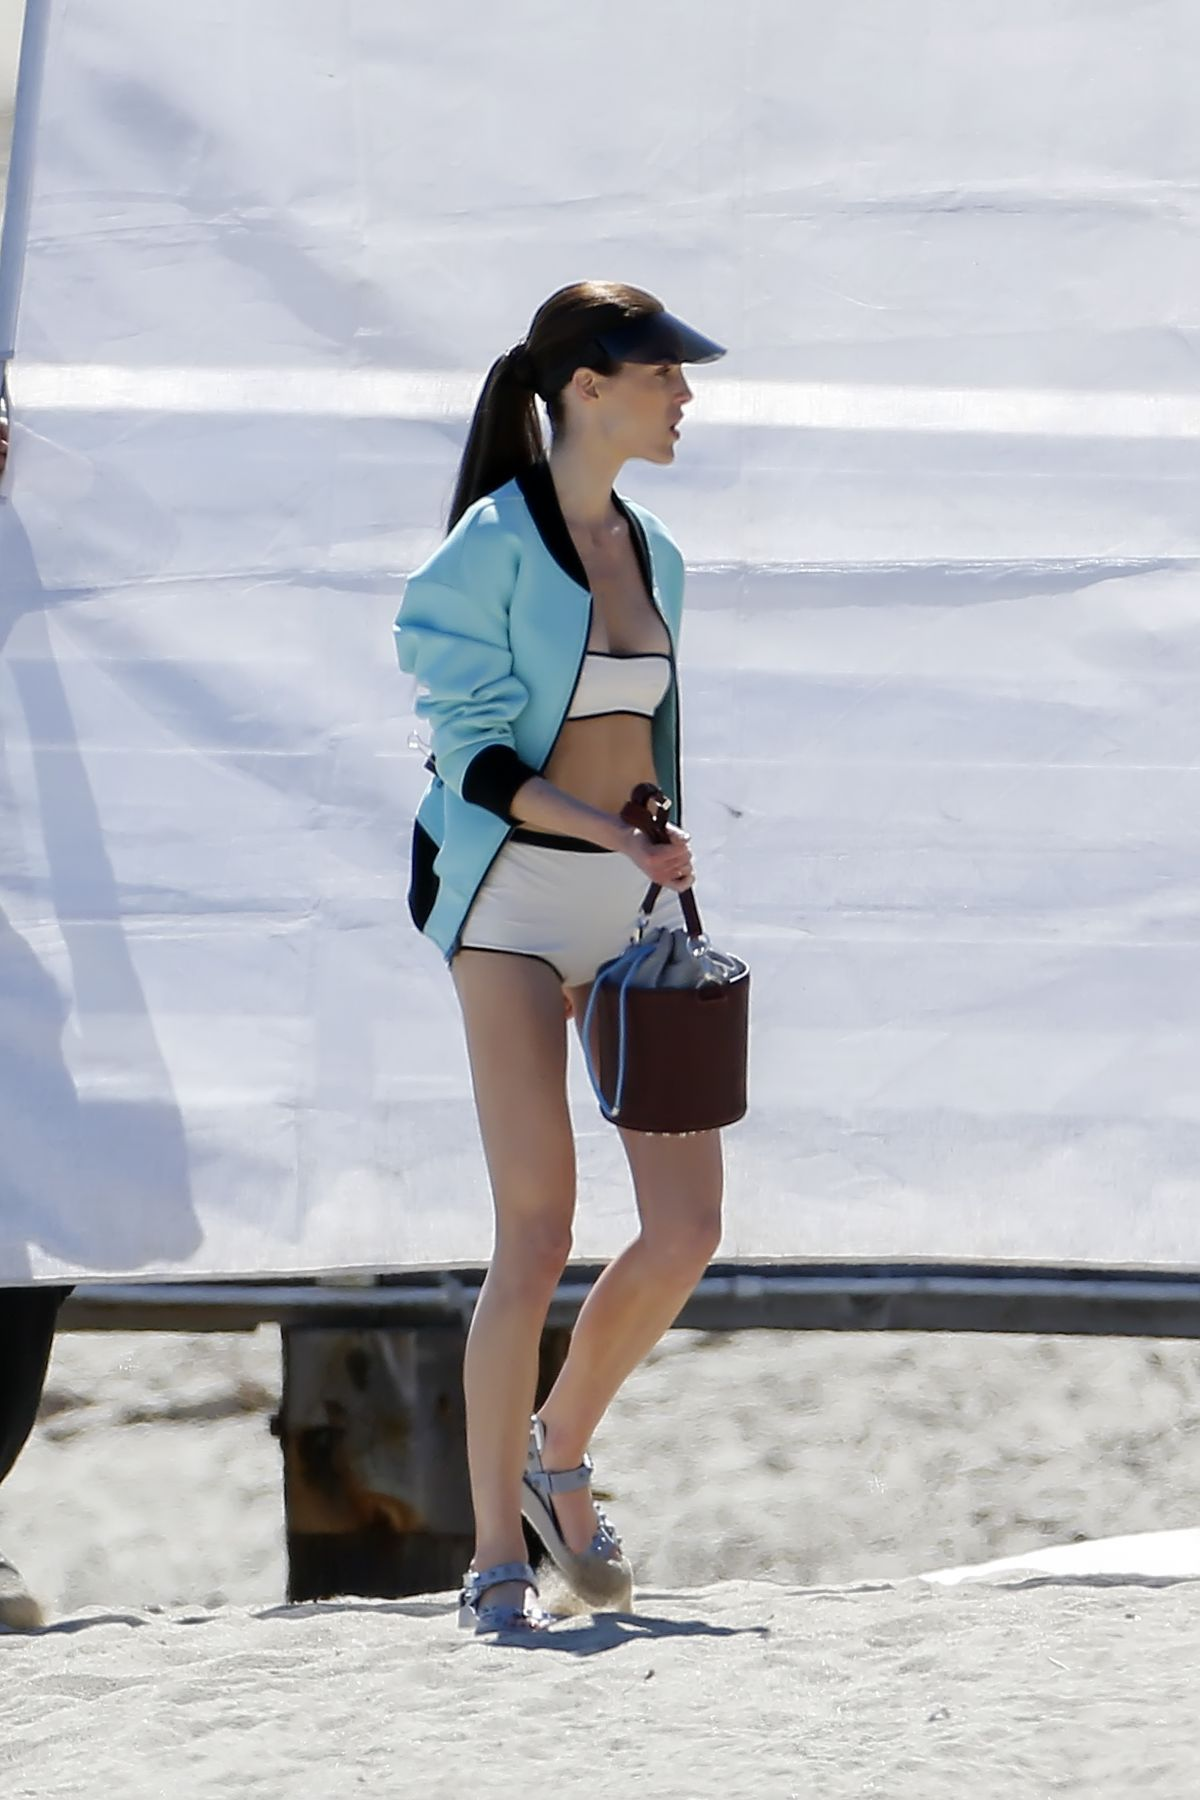 HILARY RODA at Photoshoot for Vogue on the Beach in Malibu